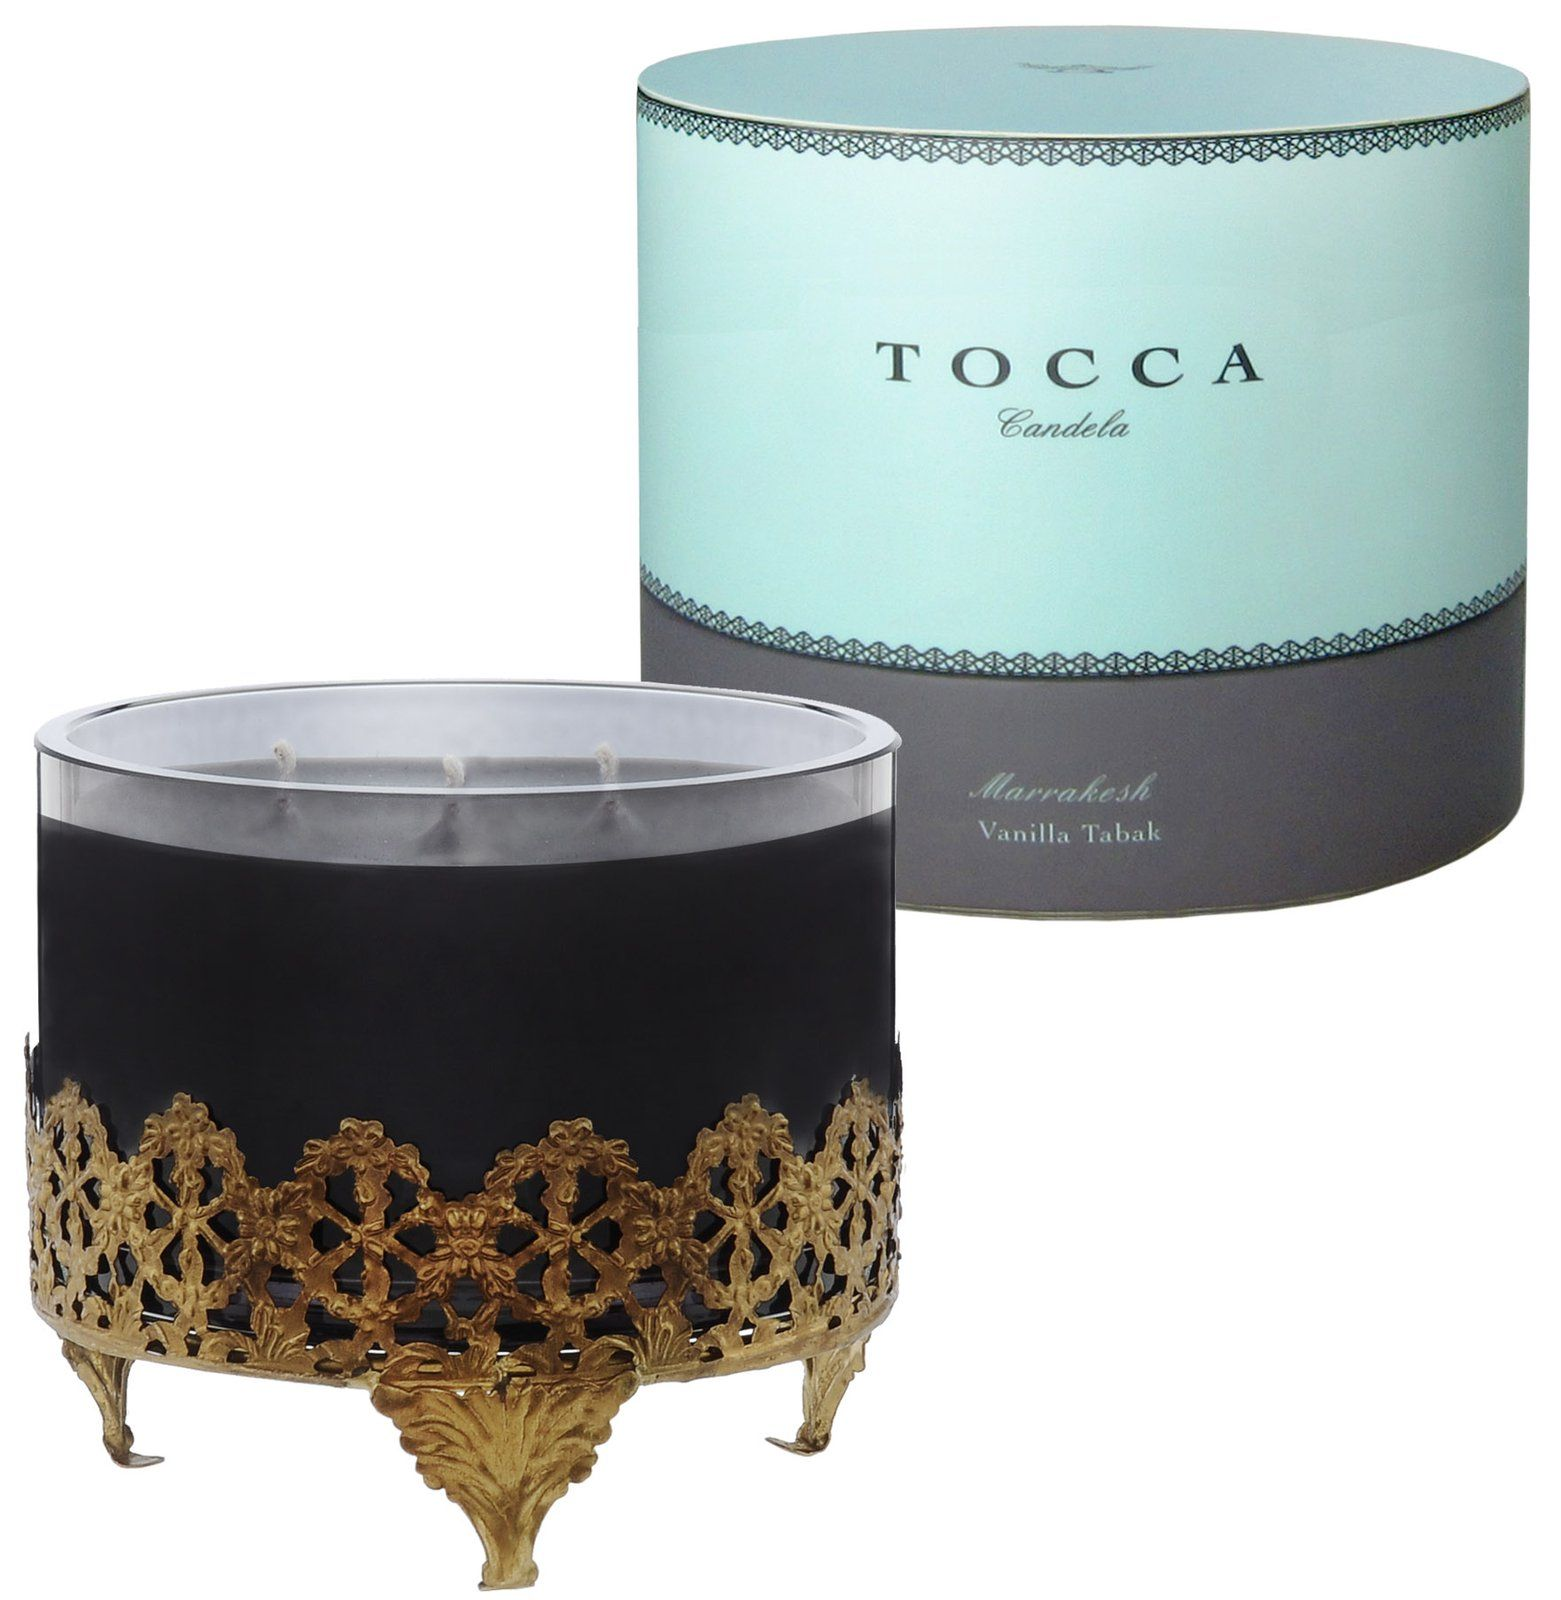 Tocca Candela Speciale Limited Edition-Marrakesh - #valentinesday